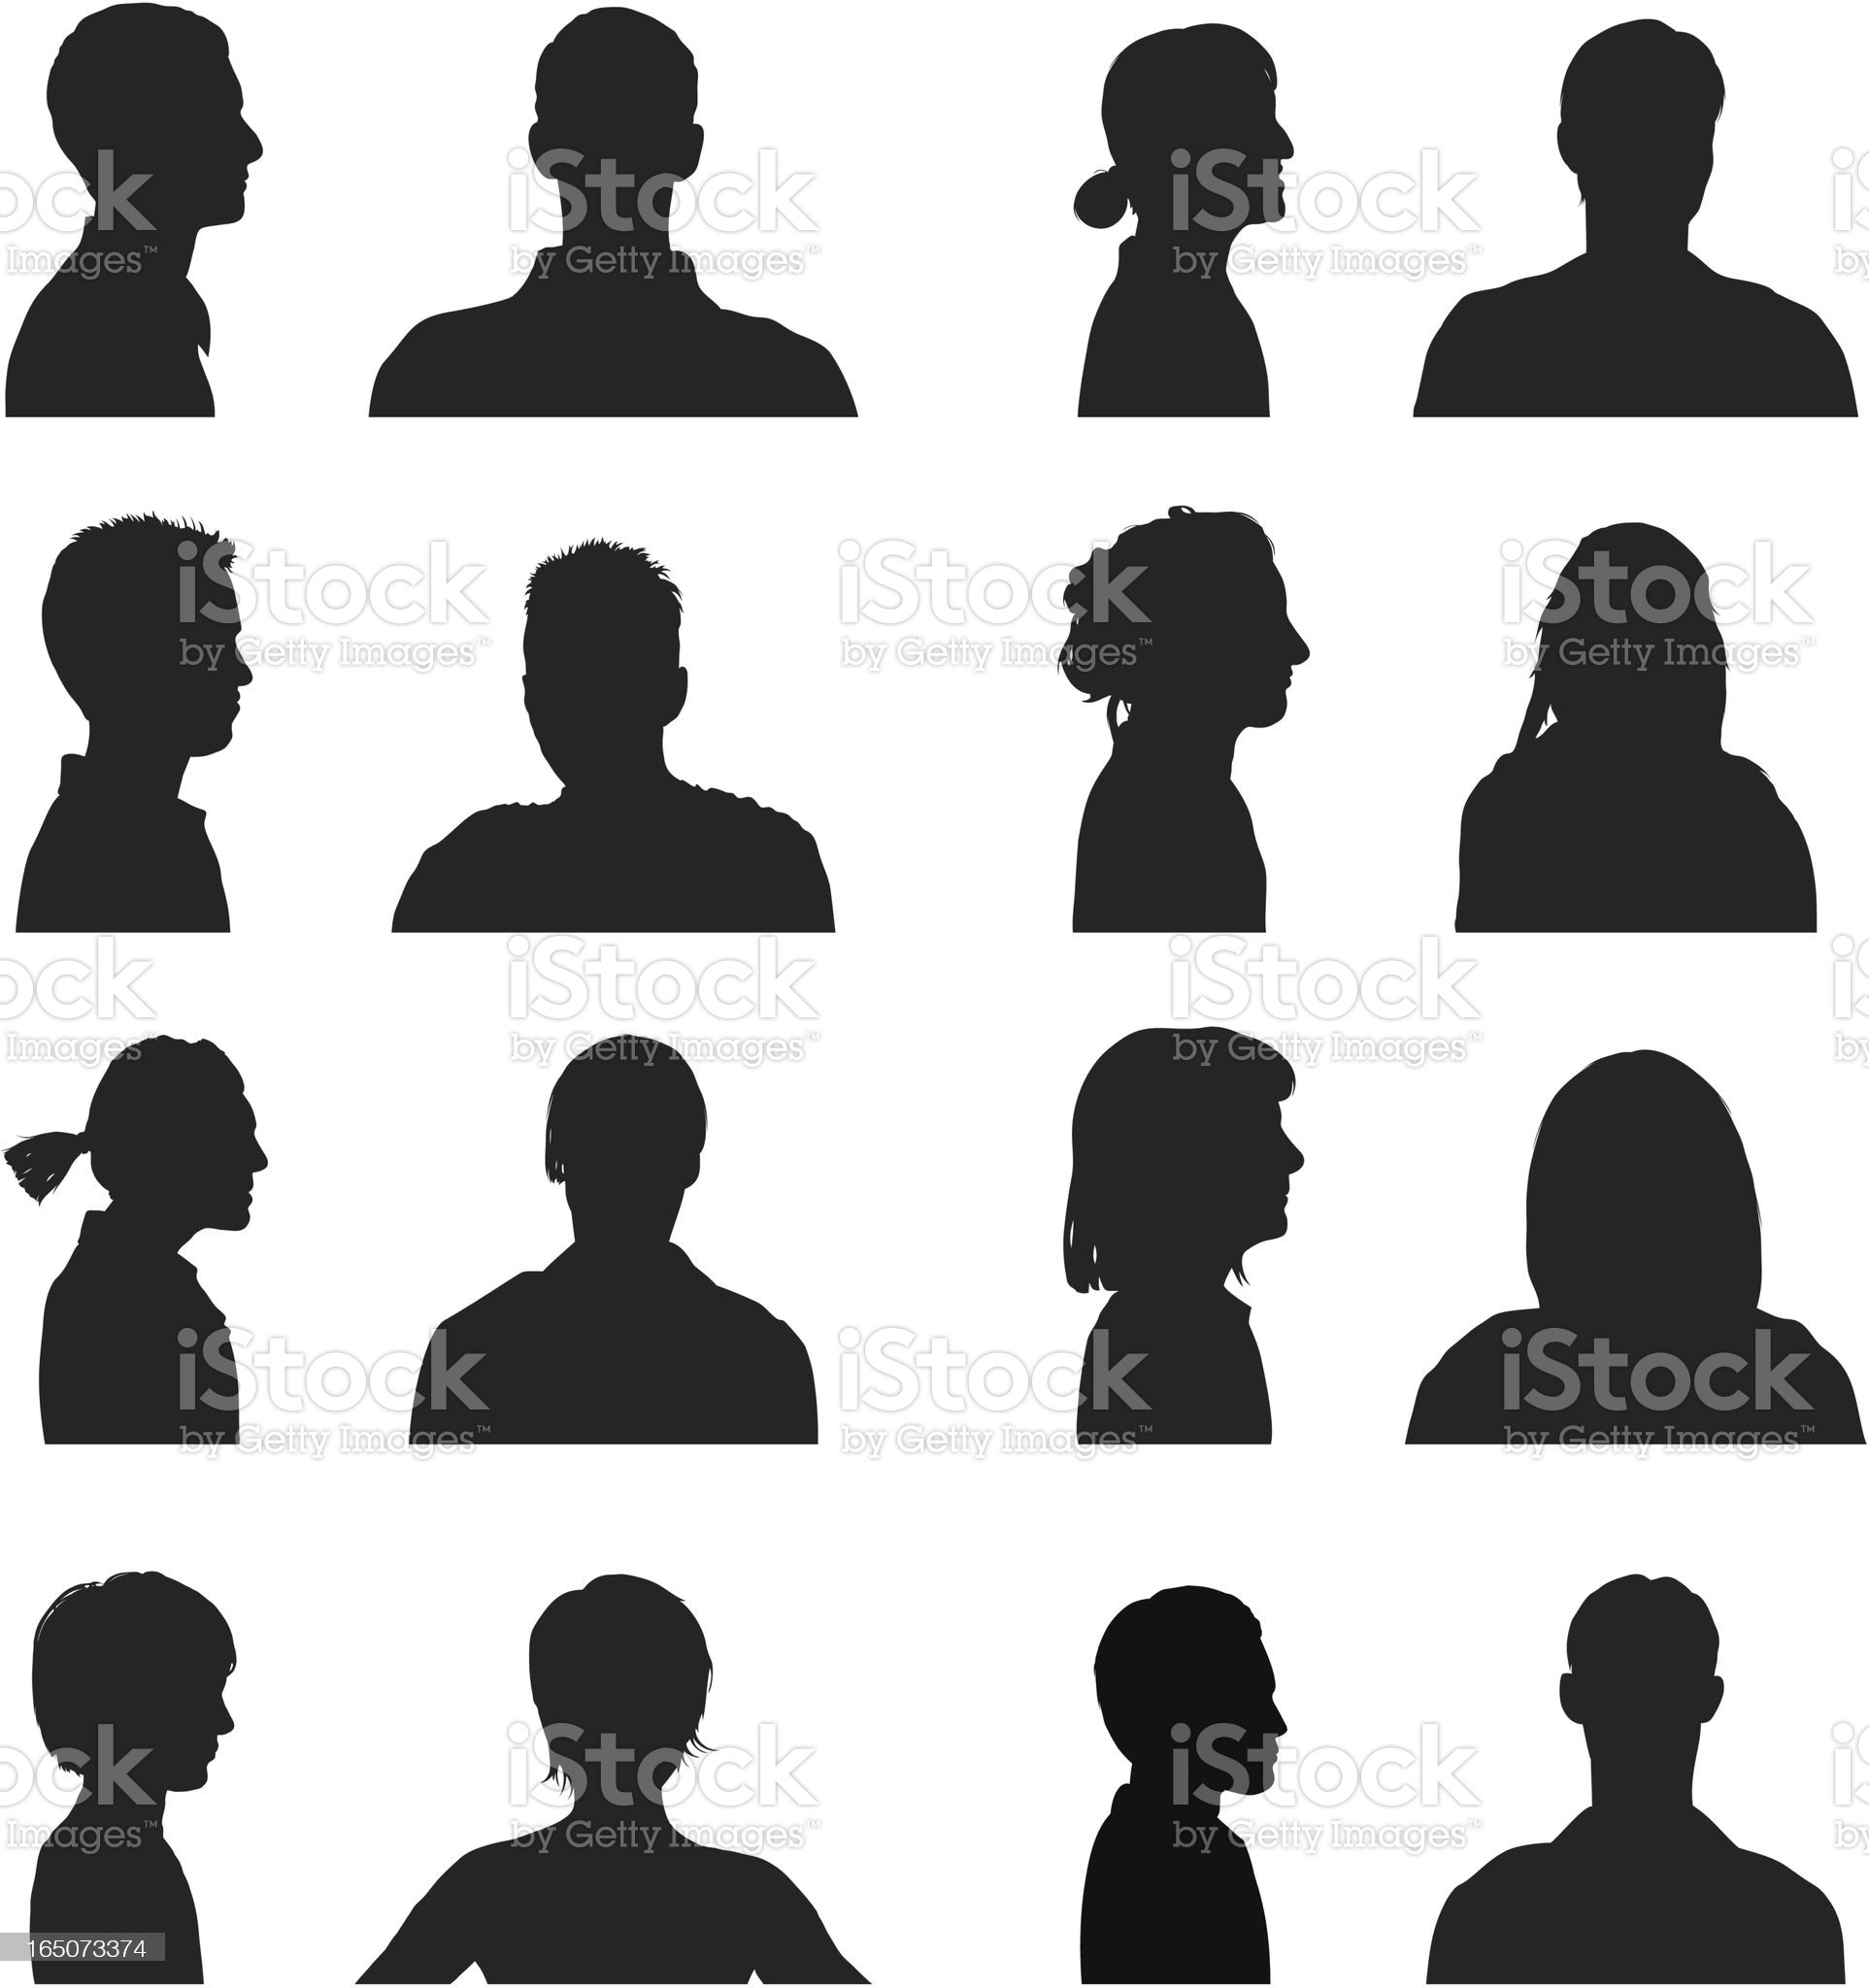 Heads and Shoulders royalty-free stock vector art